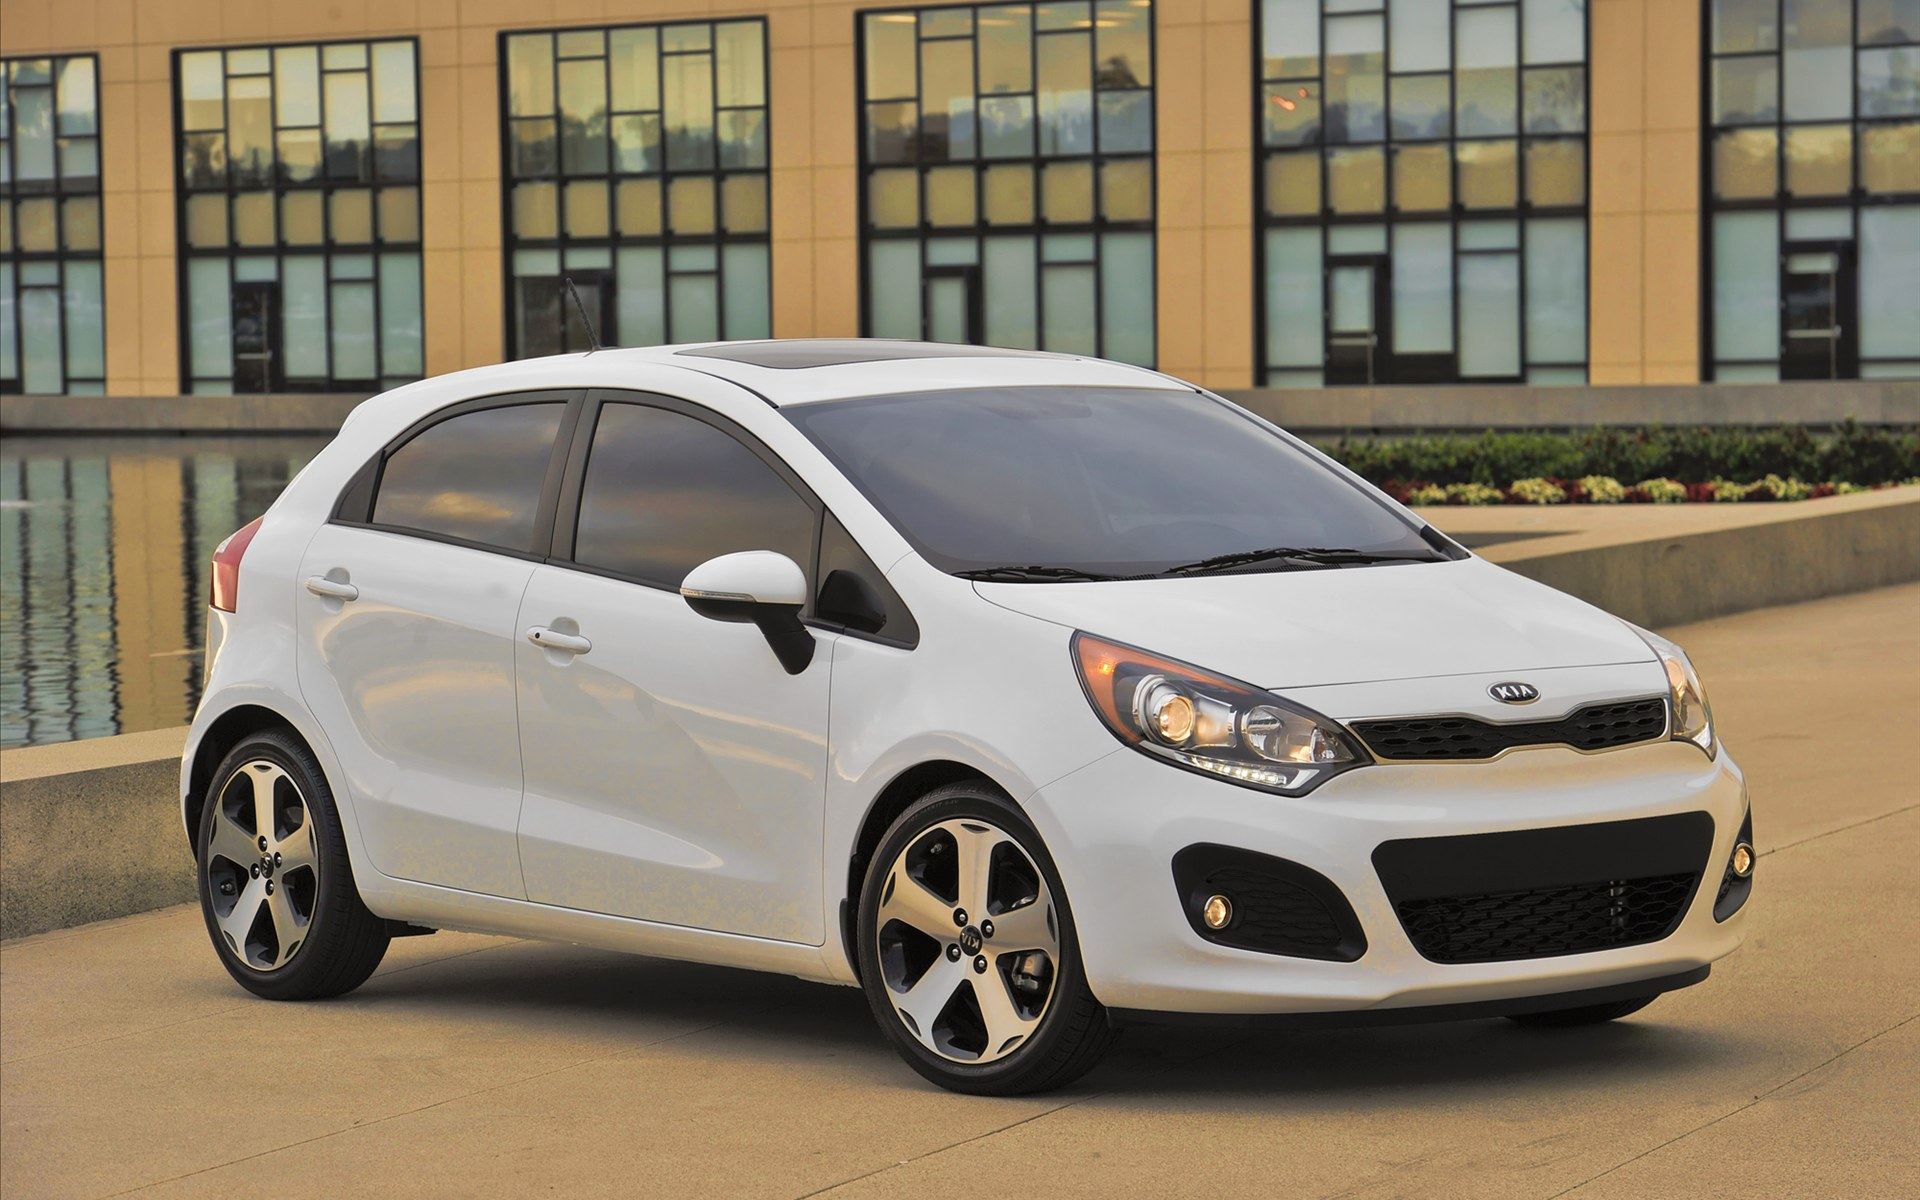 KIA RIO 5 2012 Wallpaper 6 Sense The Car 1920x1200